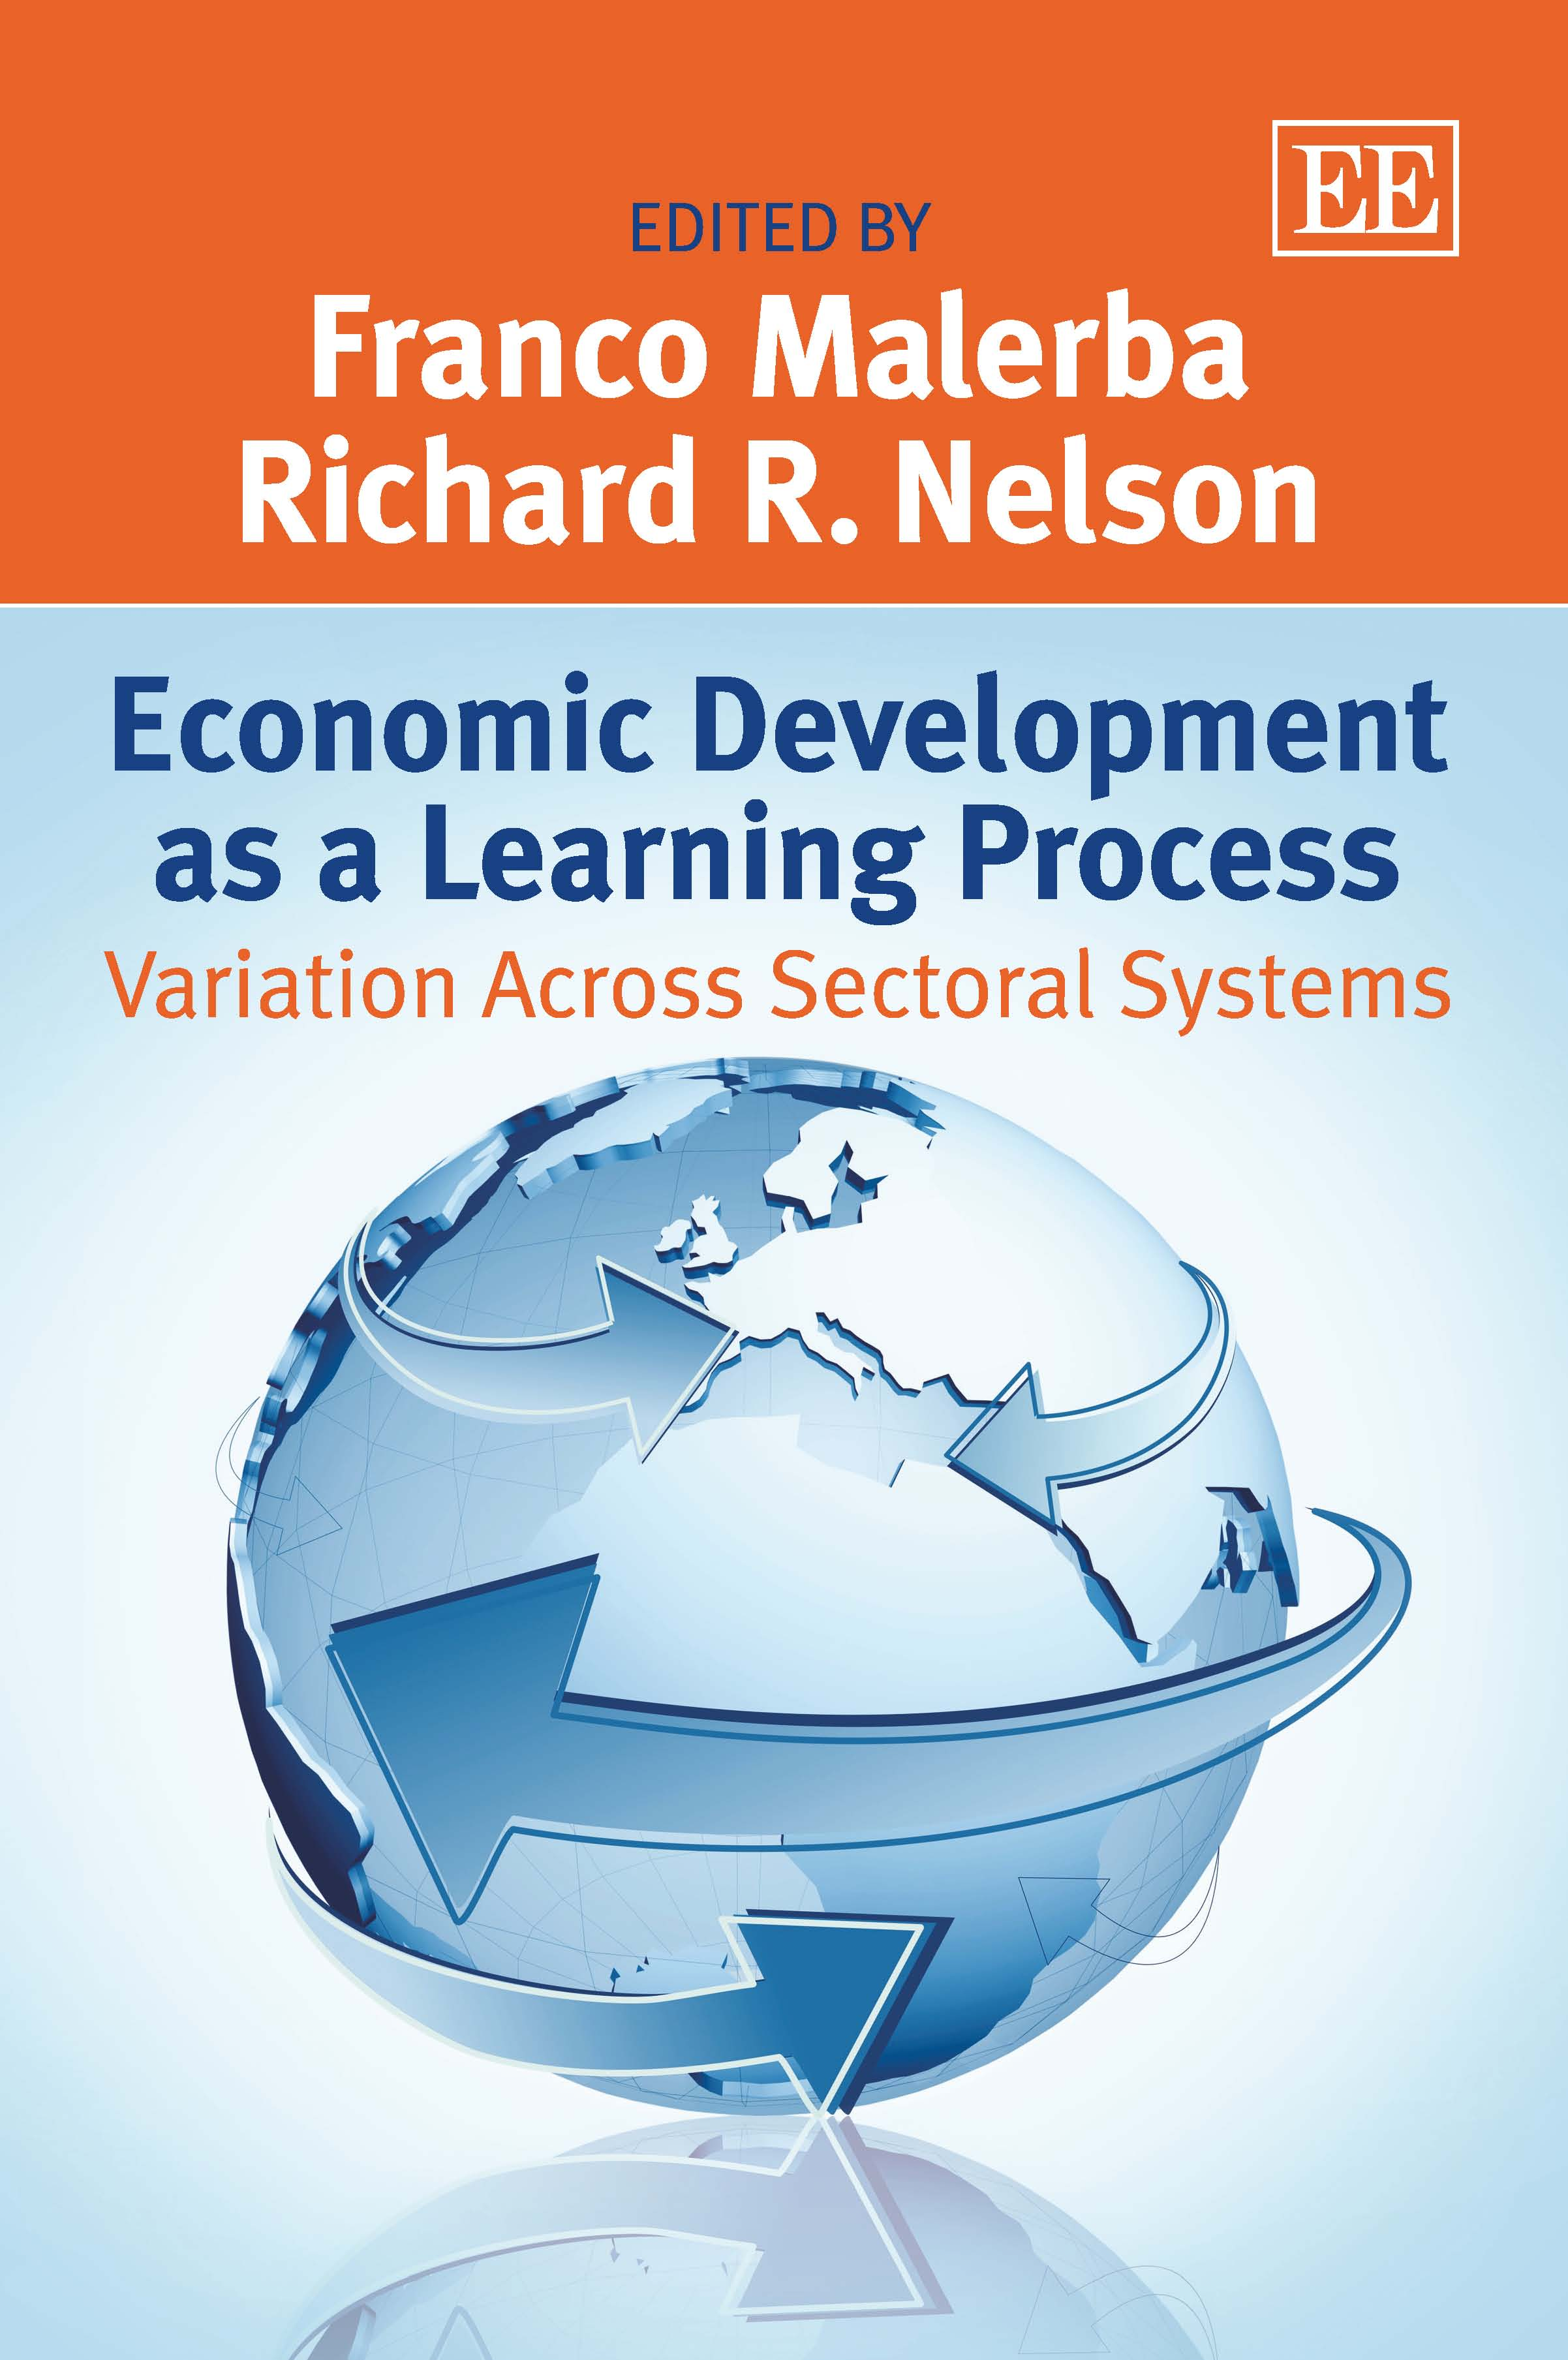 Economic Development as a Learning Process